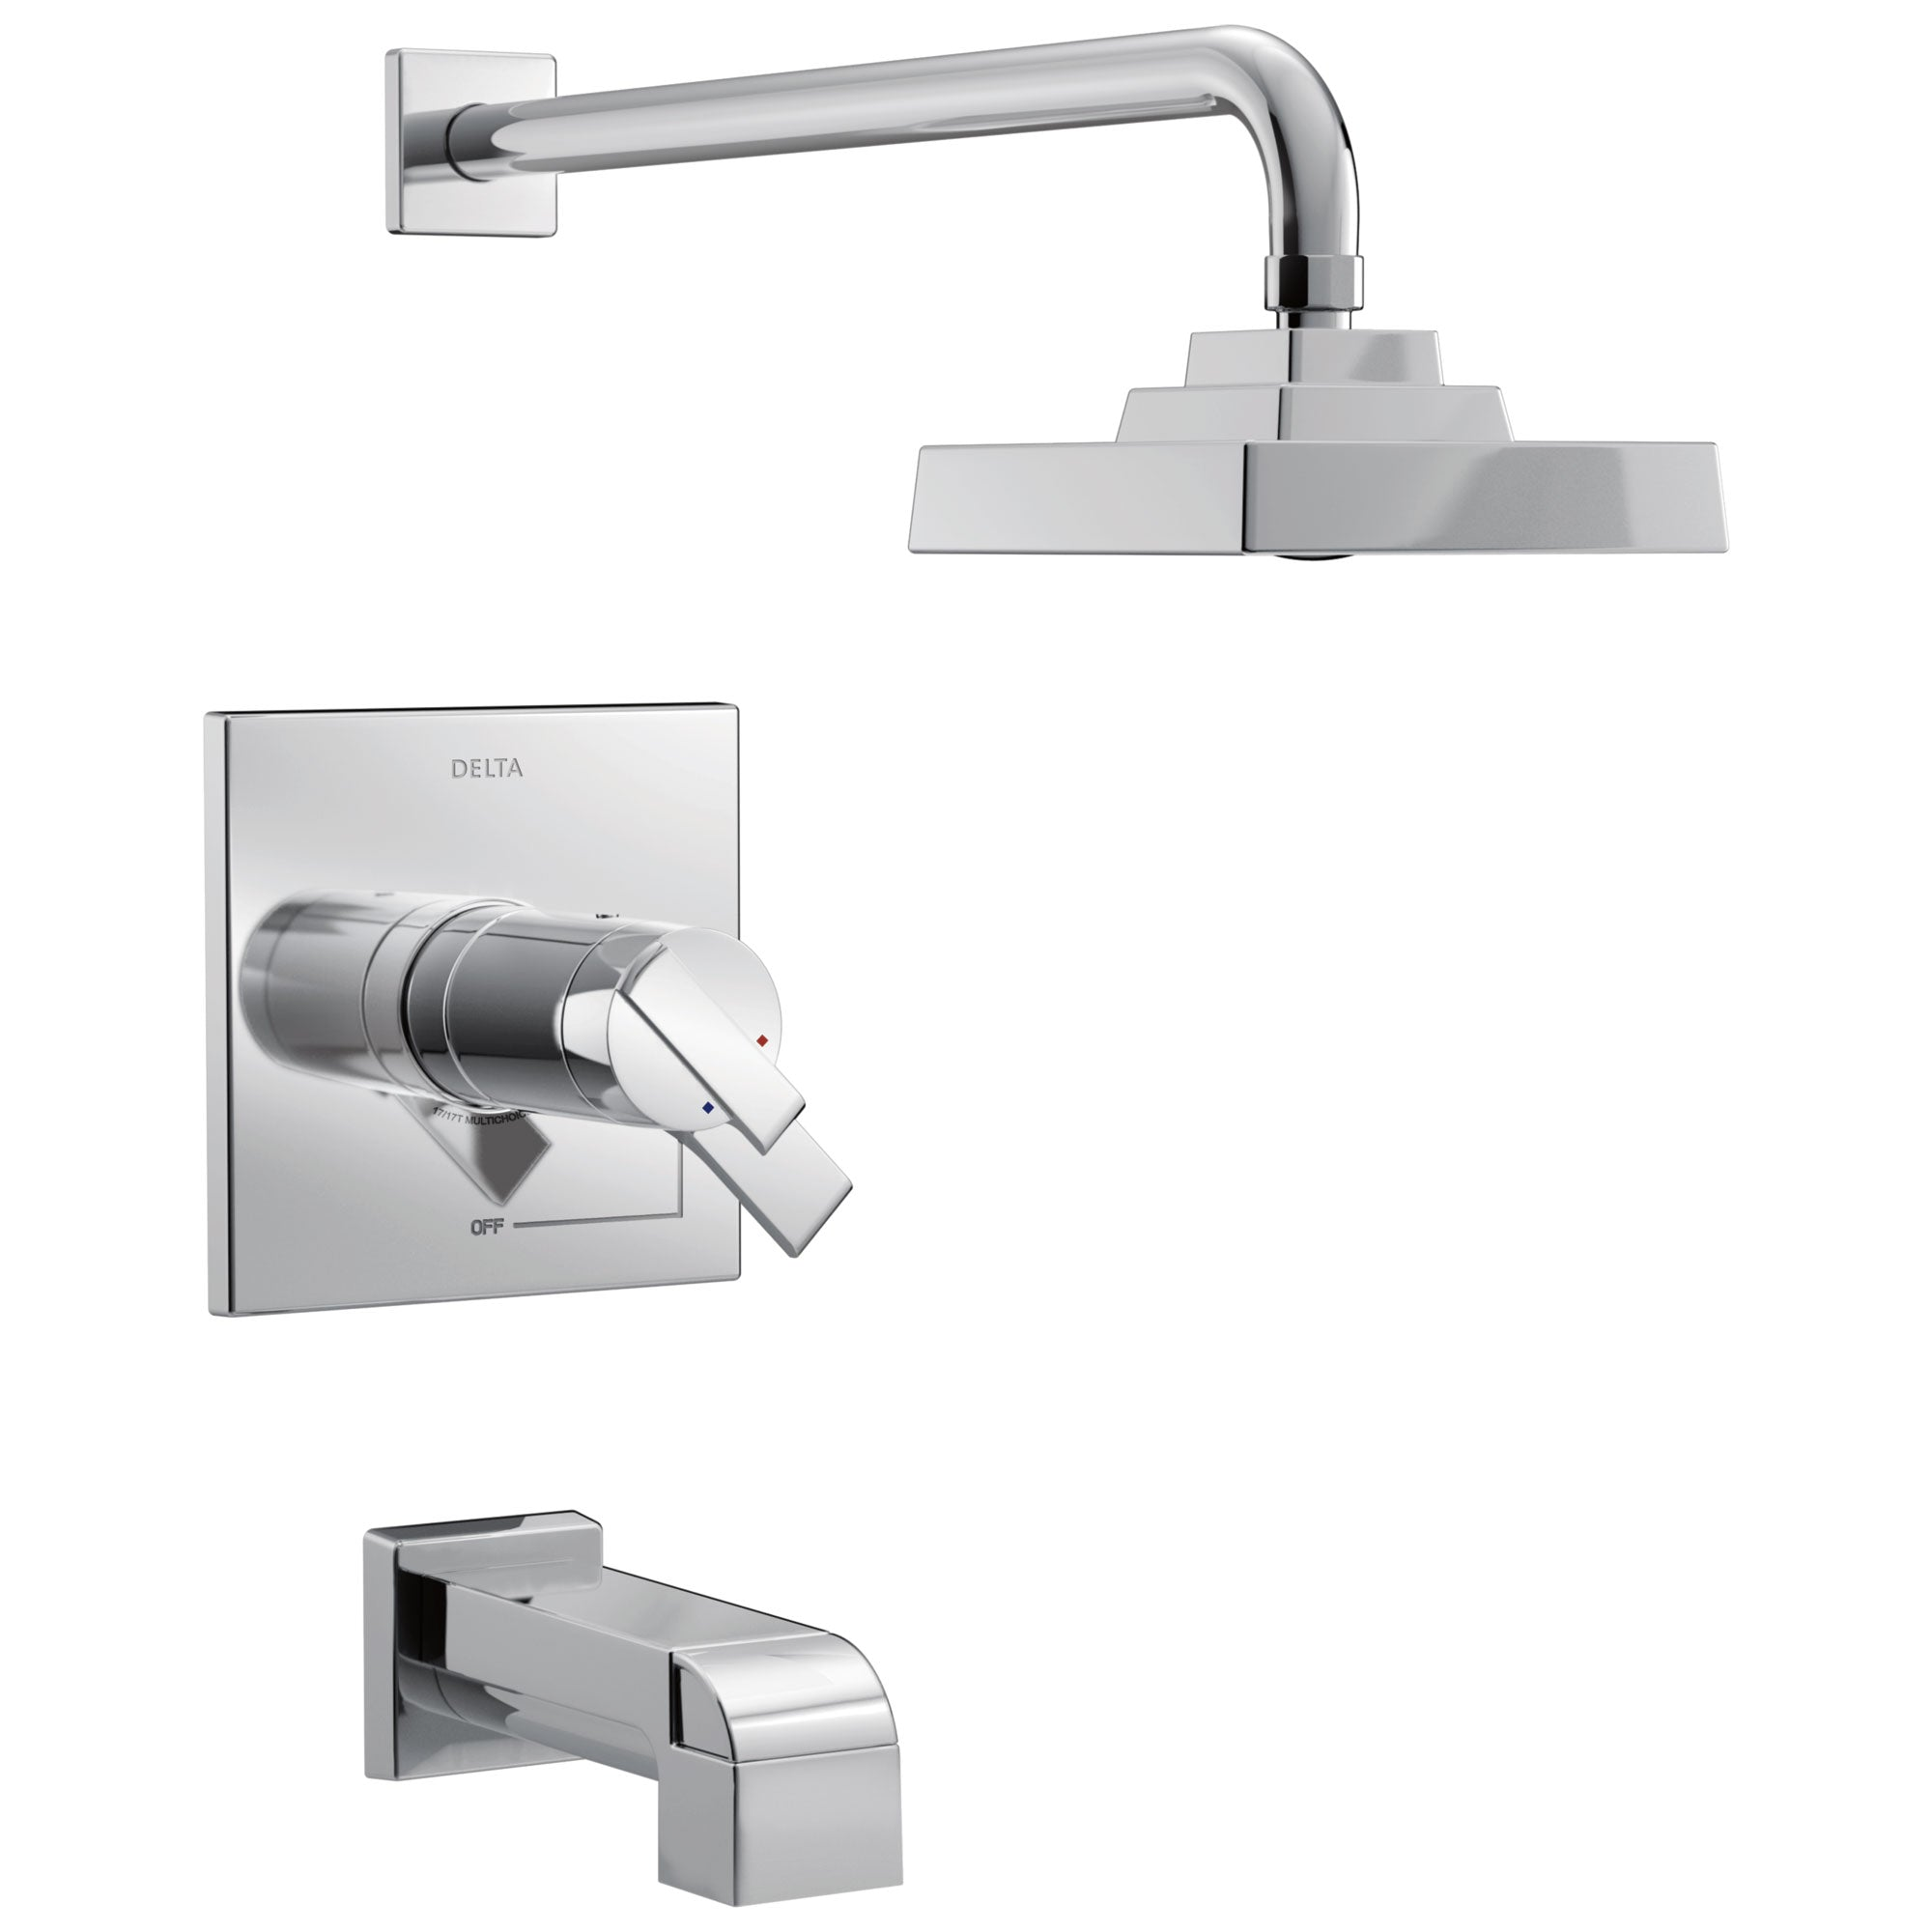 Delta Ara Collection Chrome Modern Thermostatic TempAssure 17T Series Tub and Shower Combination Faucet Trim Kit (Requires Rough-in Valve) DT17T467